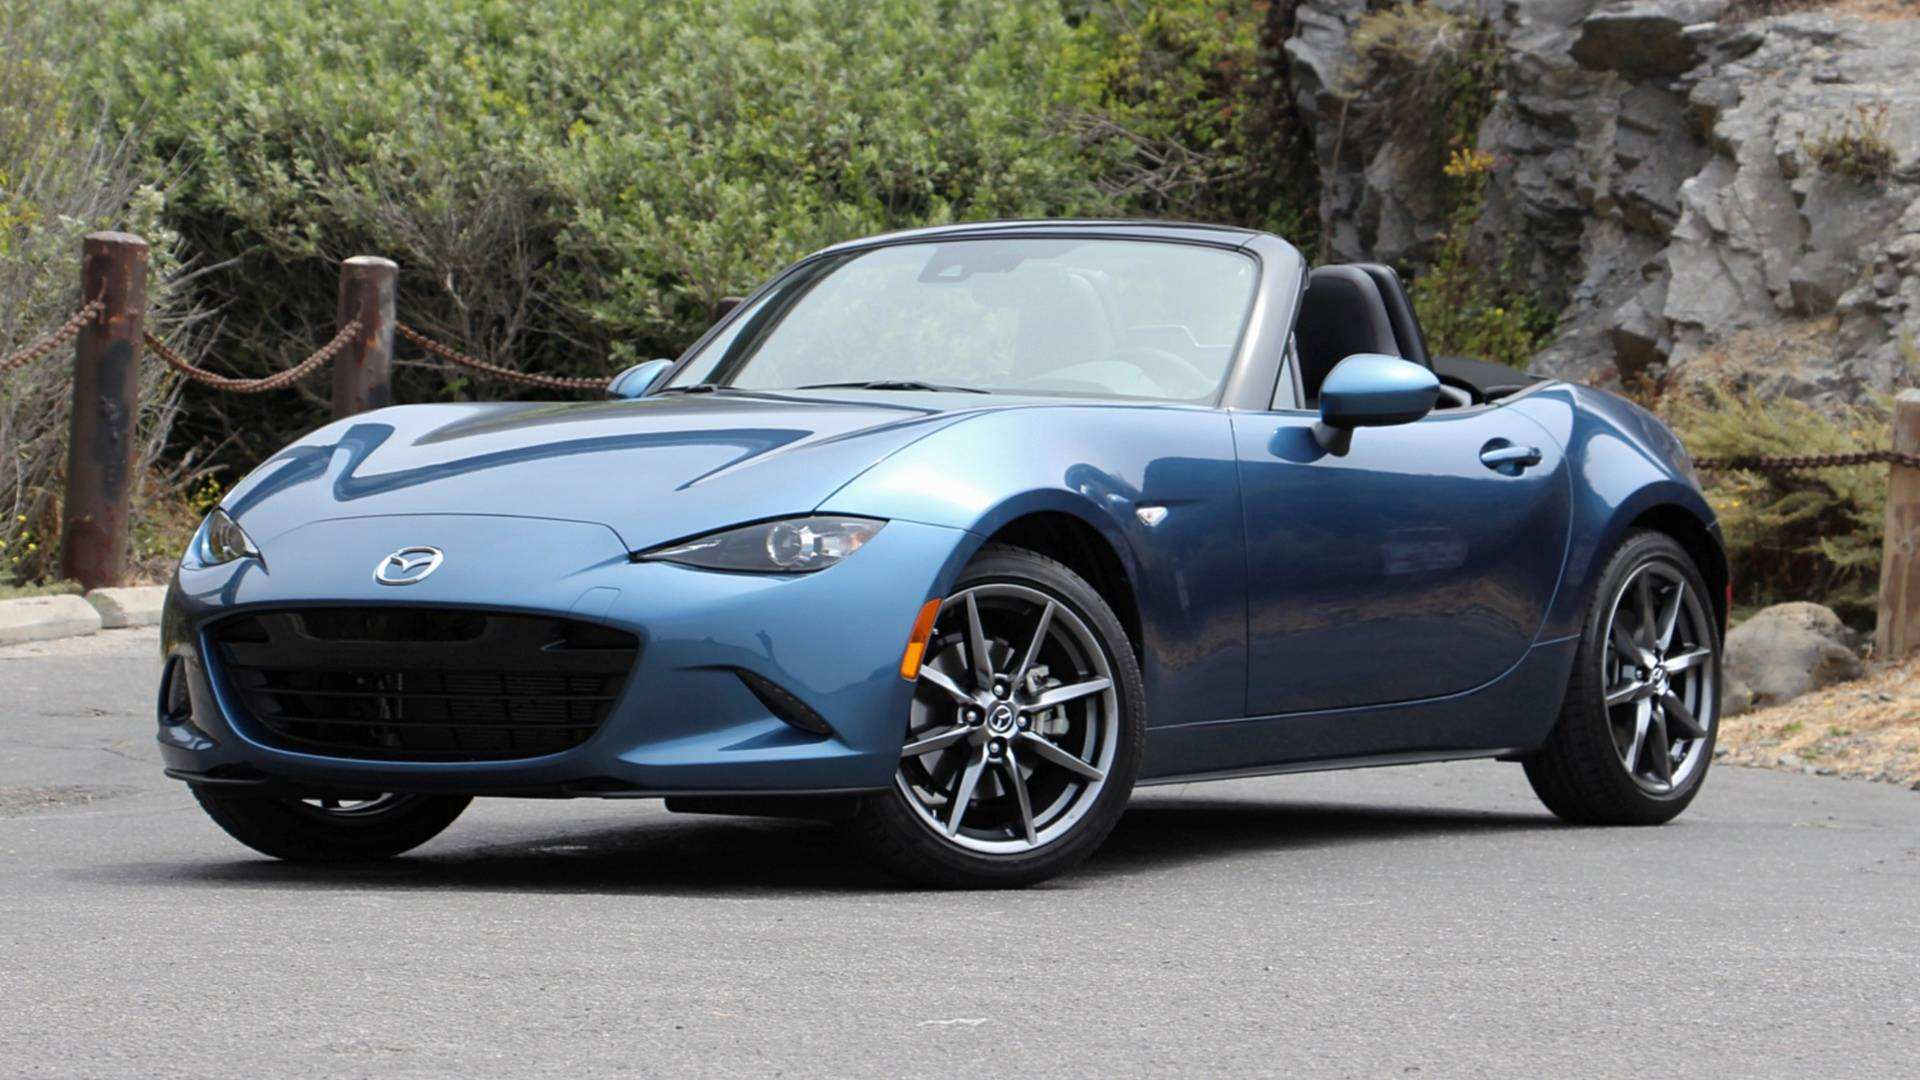 95 A 2019 Mazda Mx 5 Miata Spy Shoot